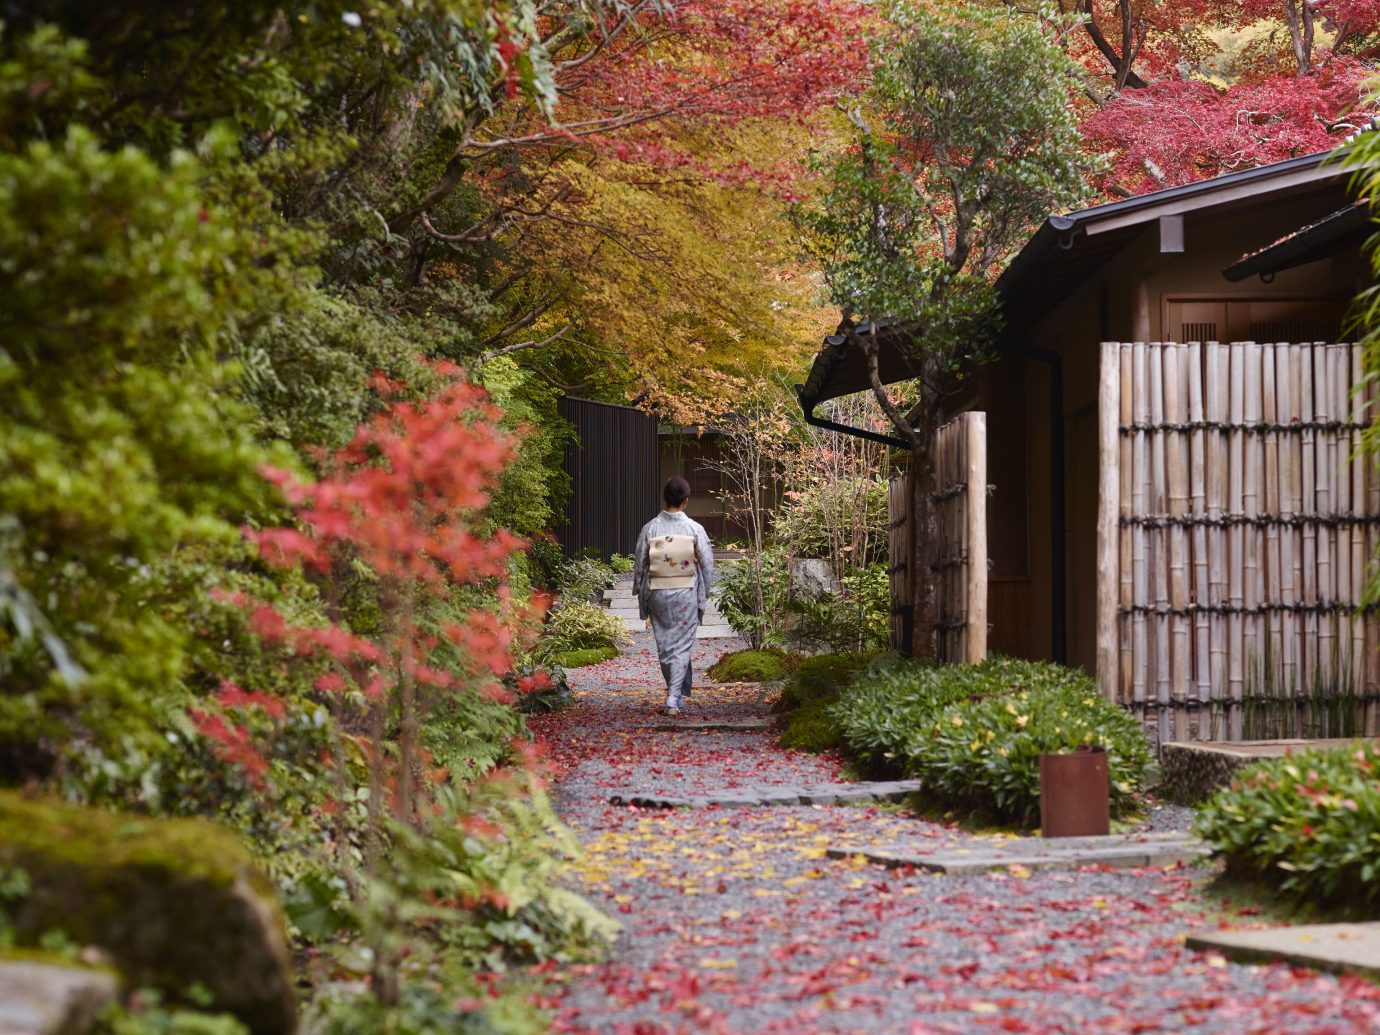 Beauty Health + Wellness Japan Kyoto San Francisco Travel Tips leaf Nature plant Garden tree autumn walkway landscape house shrub grass home yard spring landscaping maple tree backyard flower Courtyard real estate outdoor structure lawn estate